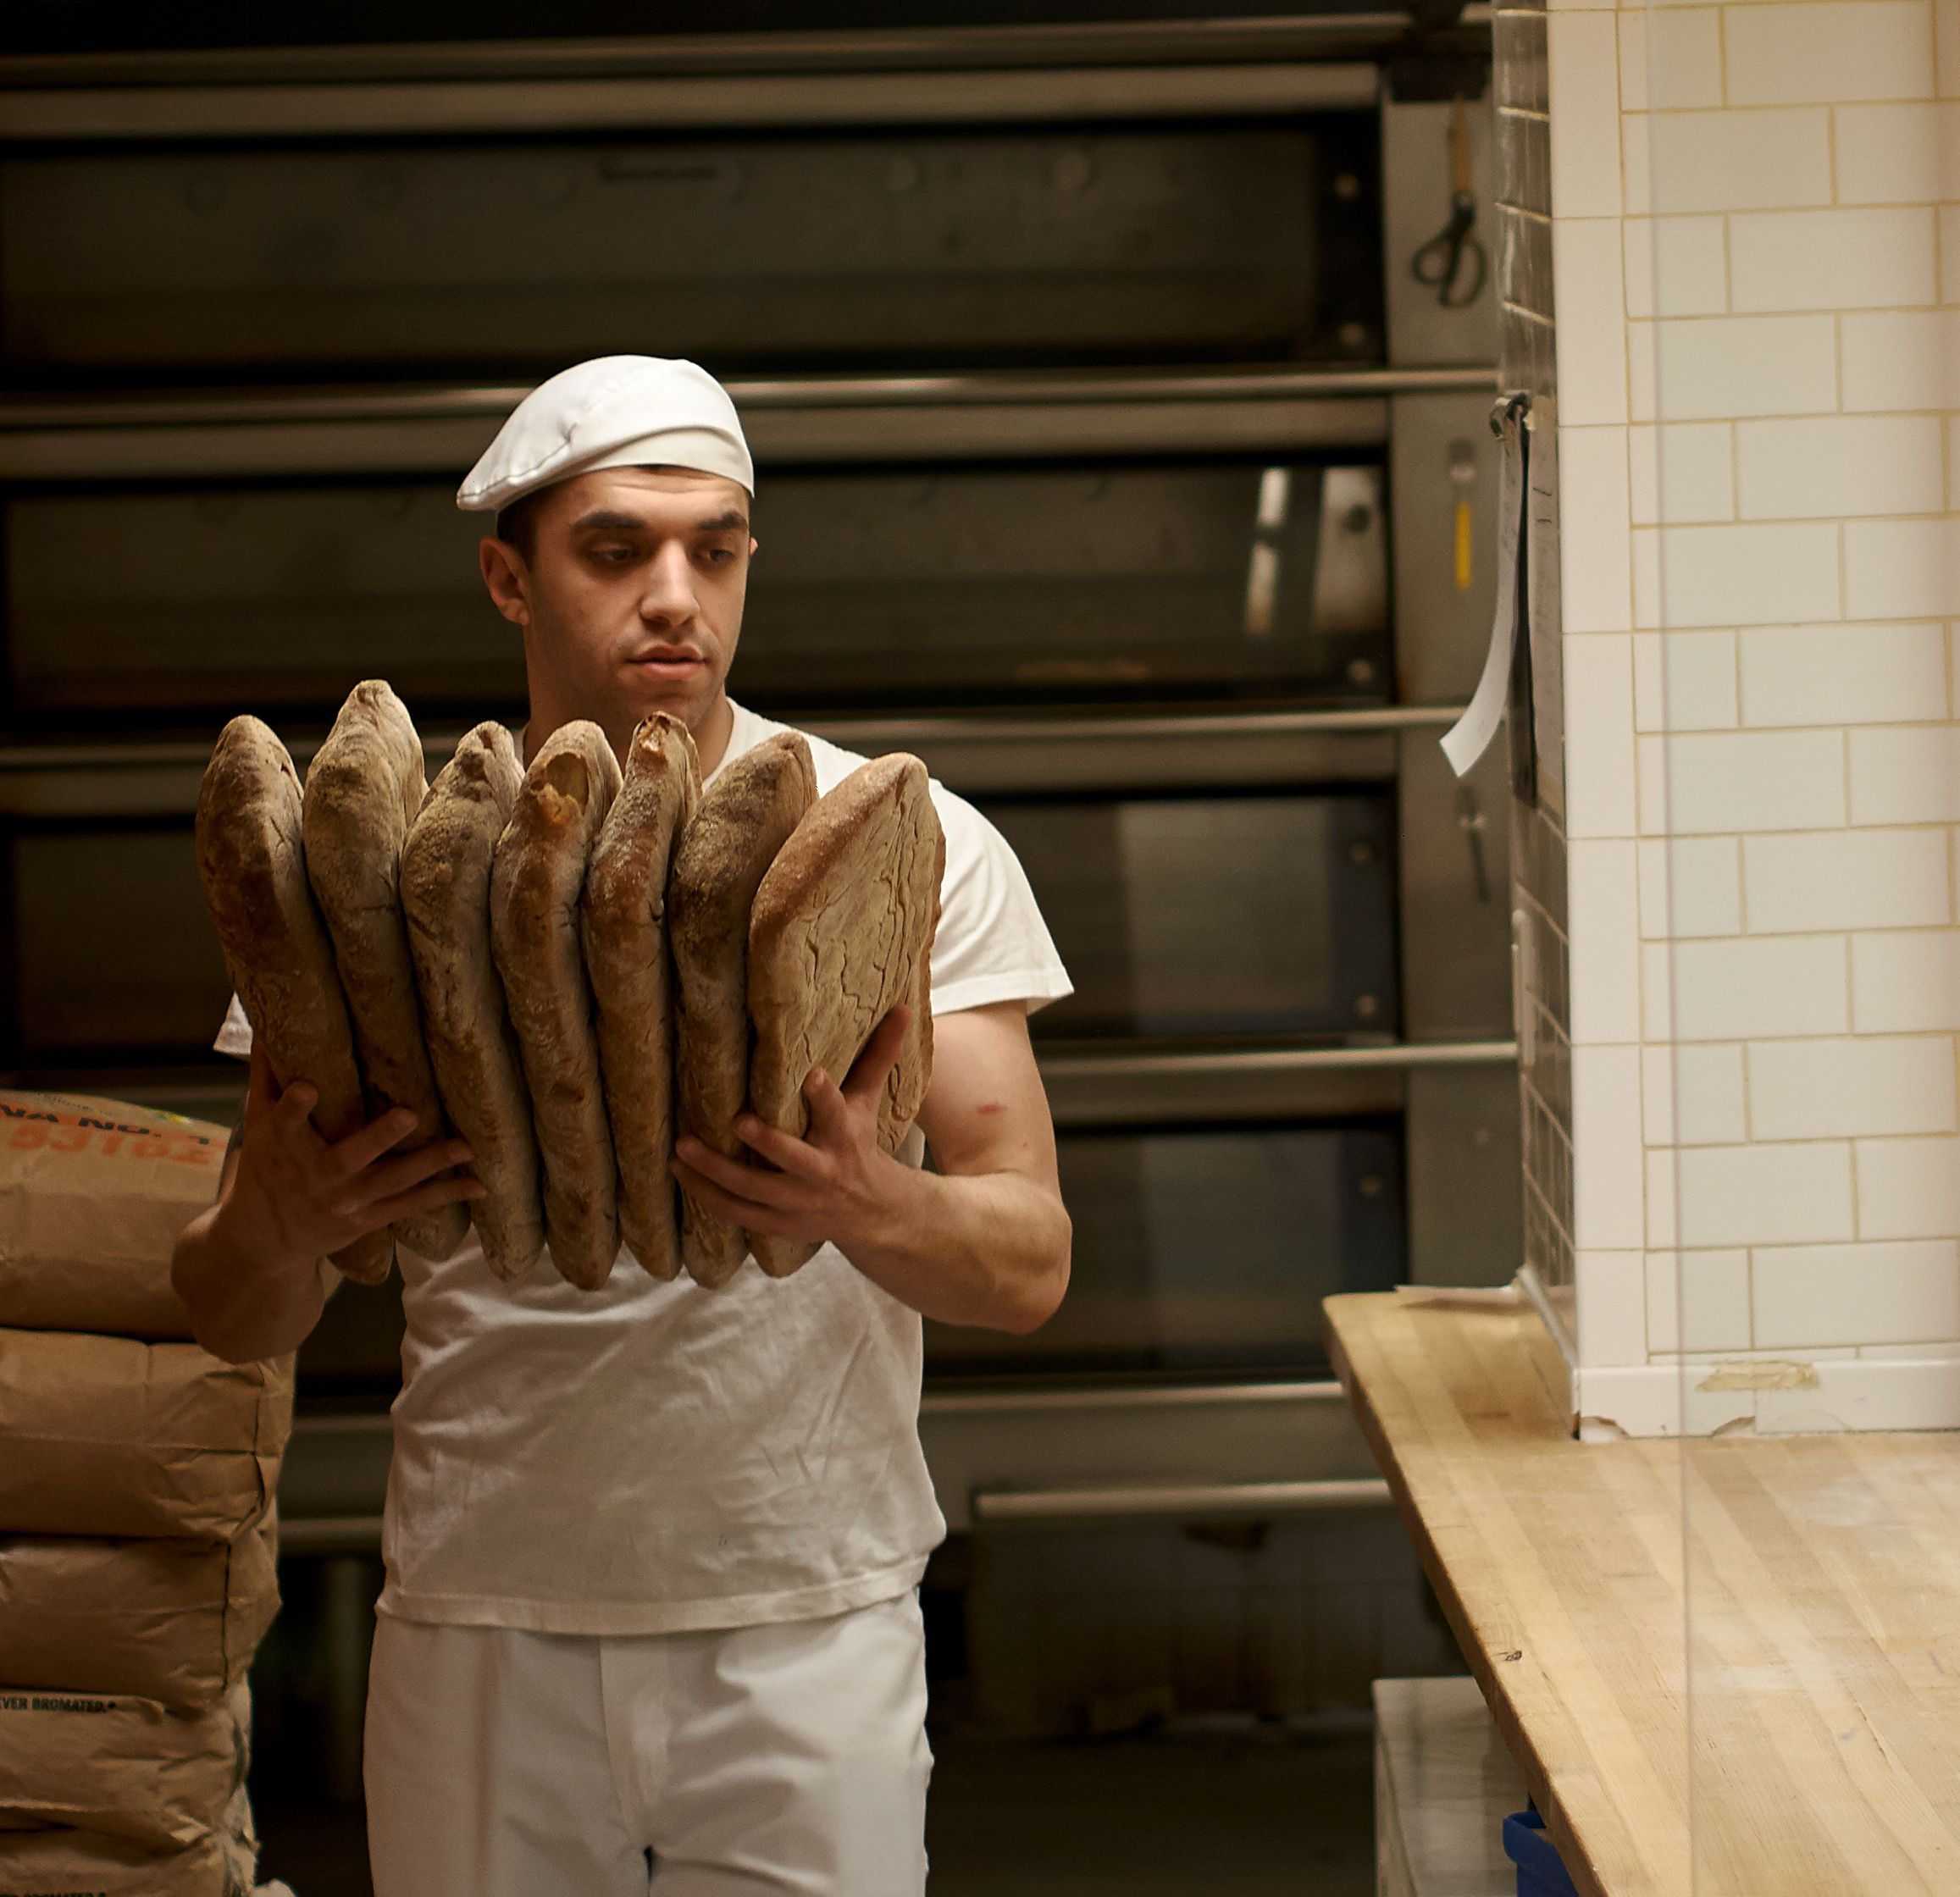 Head baker and manager Ben Tock of Bricco Panetteria in Boston's North End.